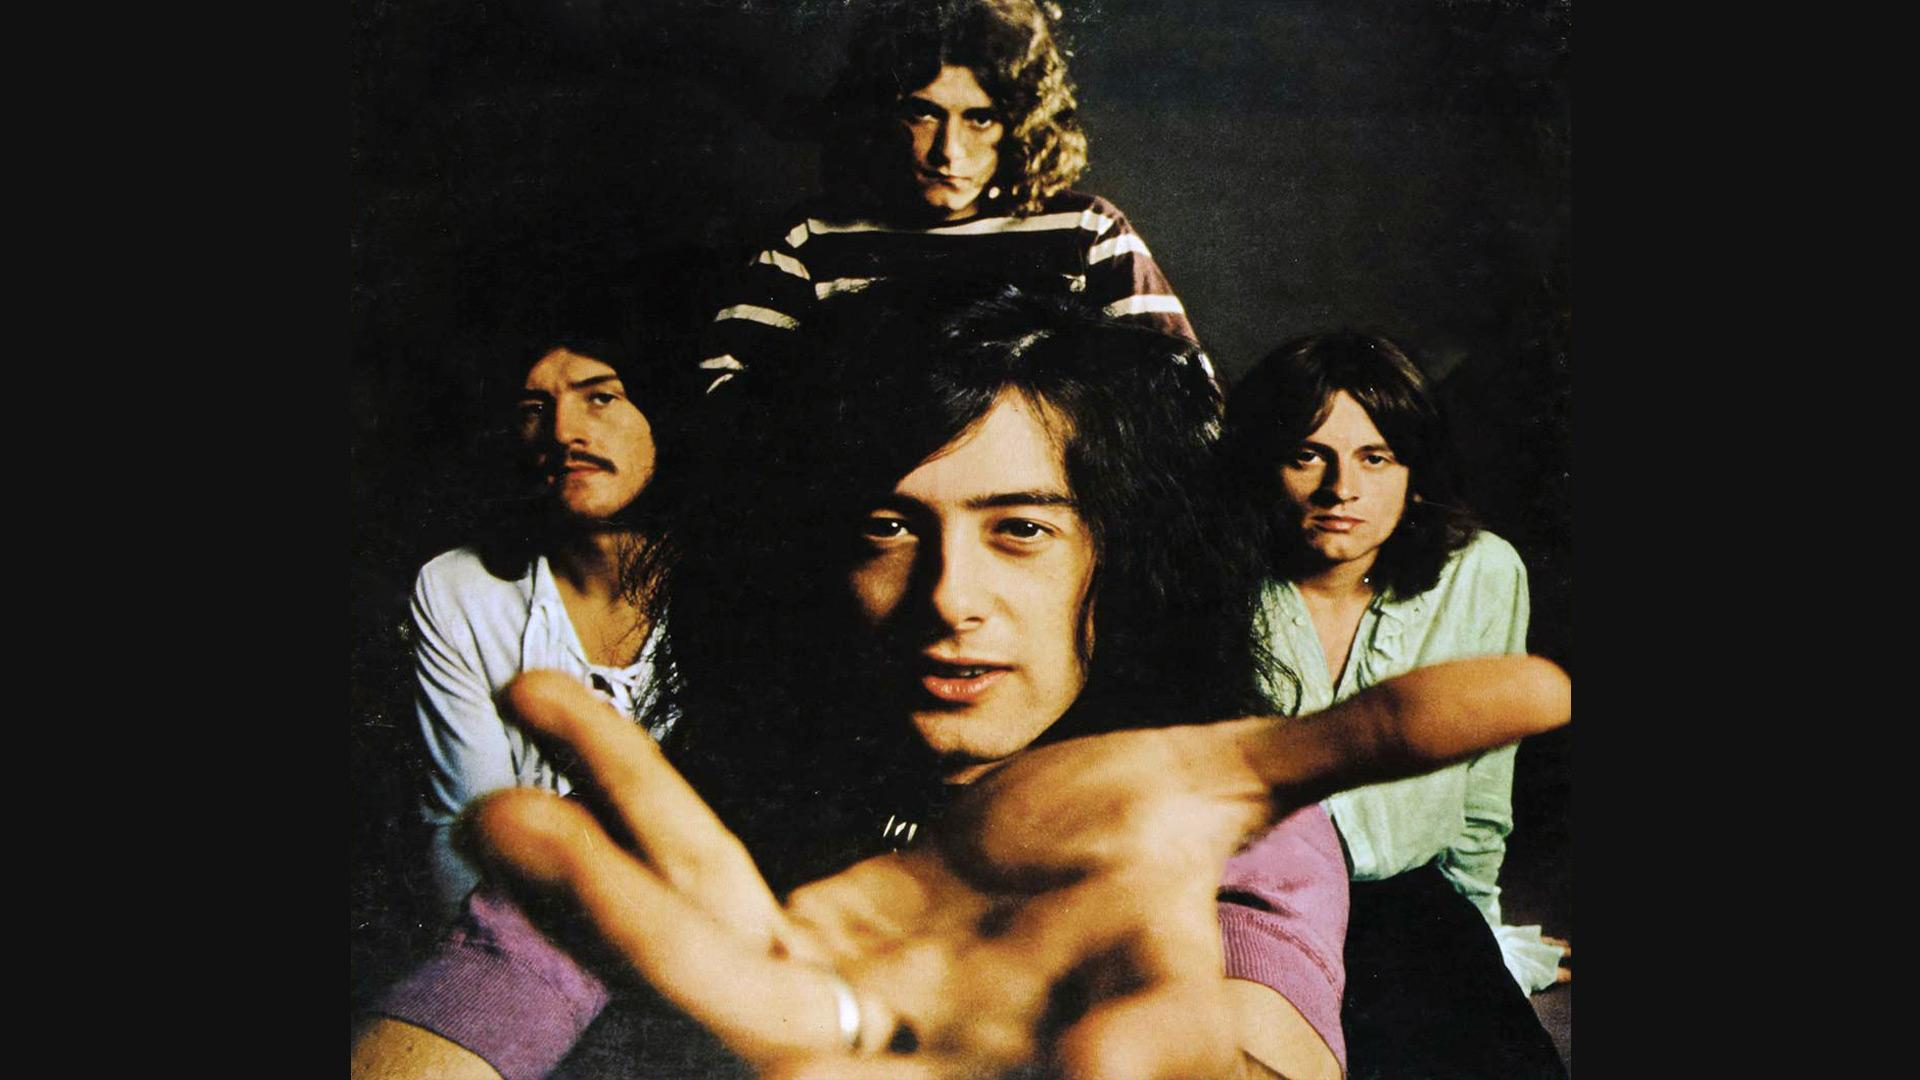 best-remembered-for-the-being-the-premier-hard-rock-band-of-the-s-Led-Zeppelin-could-easily-wallpaper-wp3601705